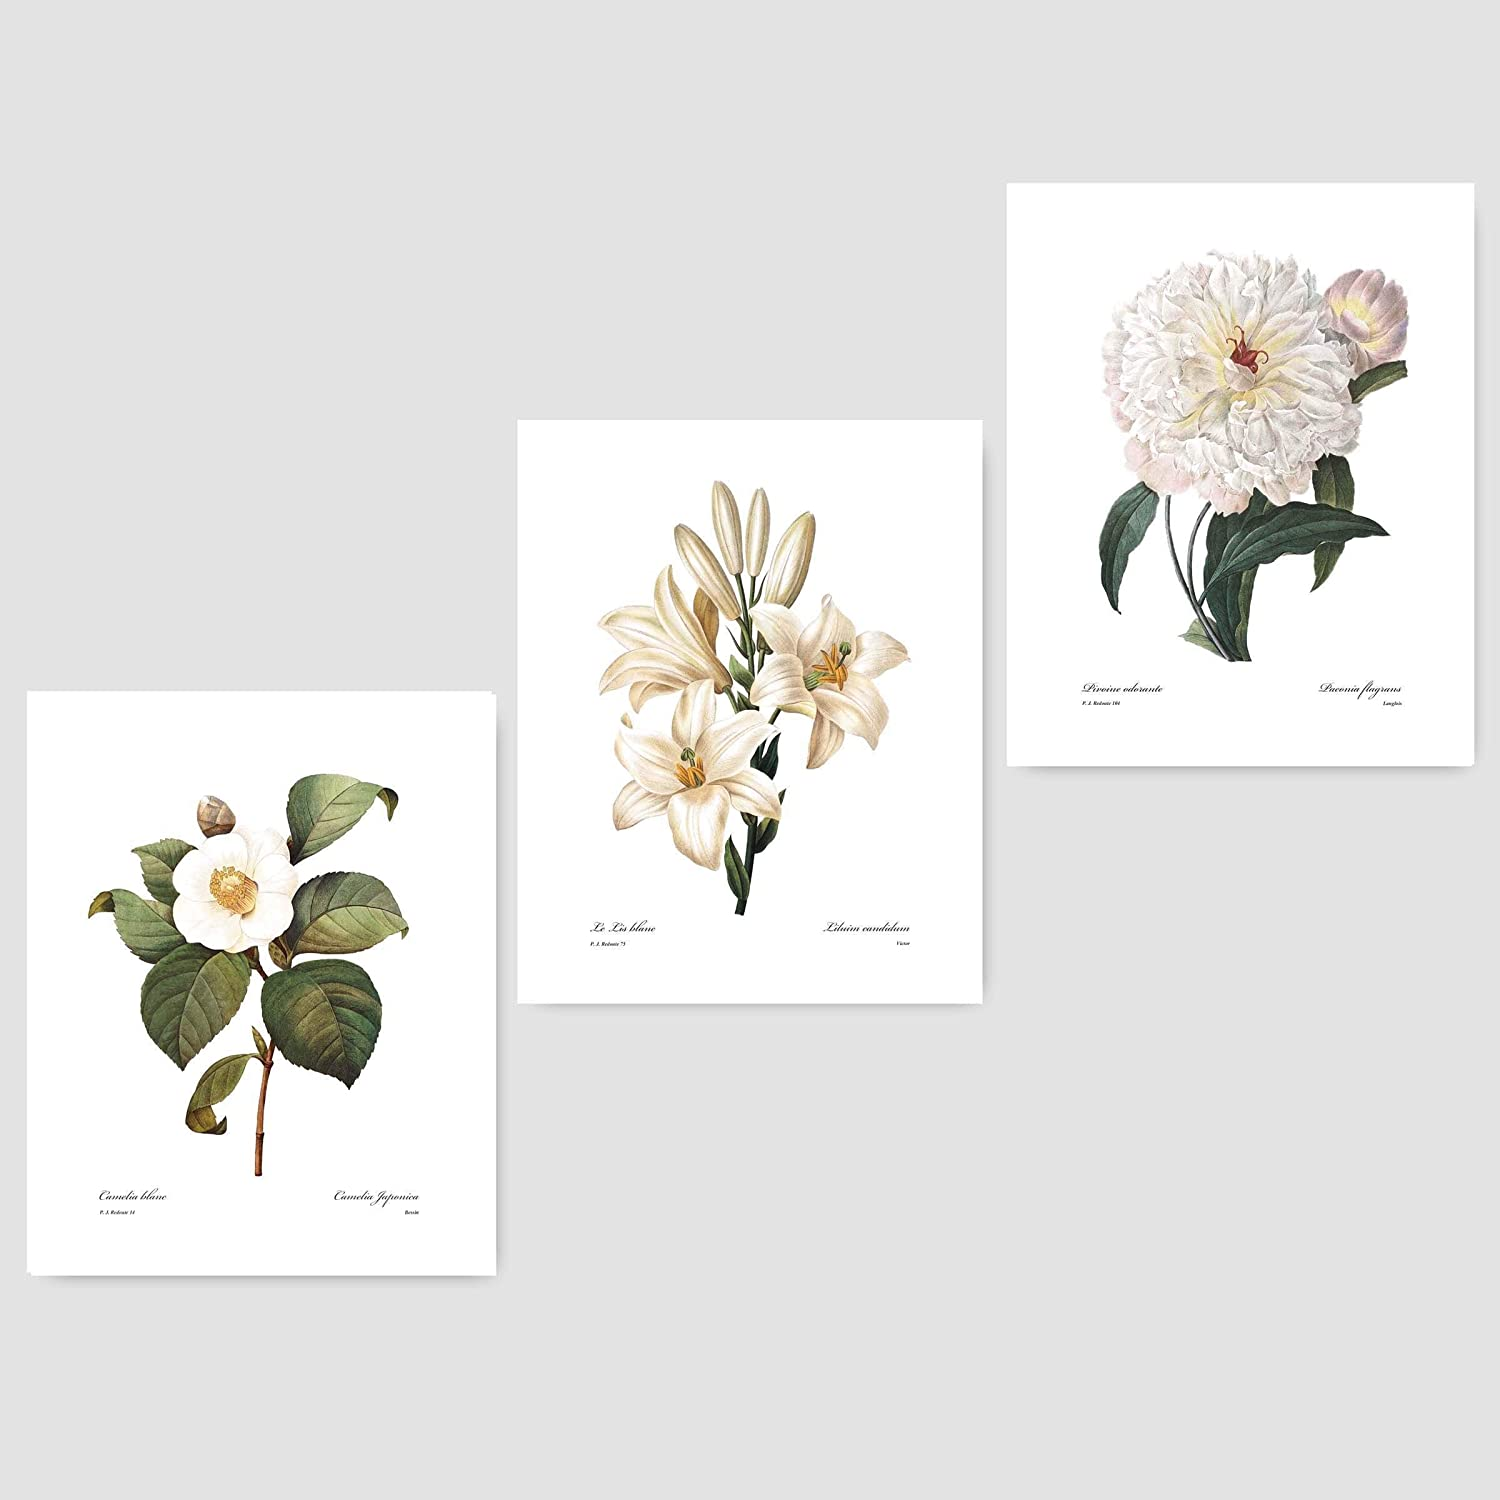 261d8536d Amazon.com: (Set of 3) White Flower Art (Redoute Botanical Prints Living  Room Bedroom Wall Decor) Camellia, Lily, Peony – Unframed: Handmade